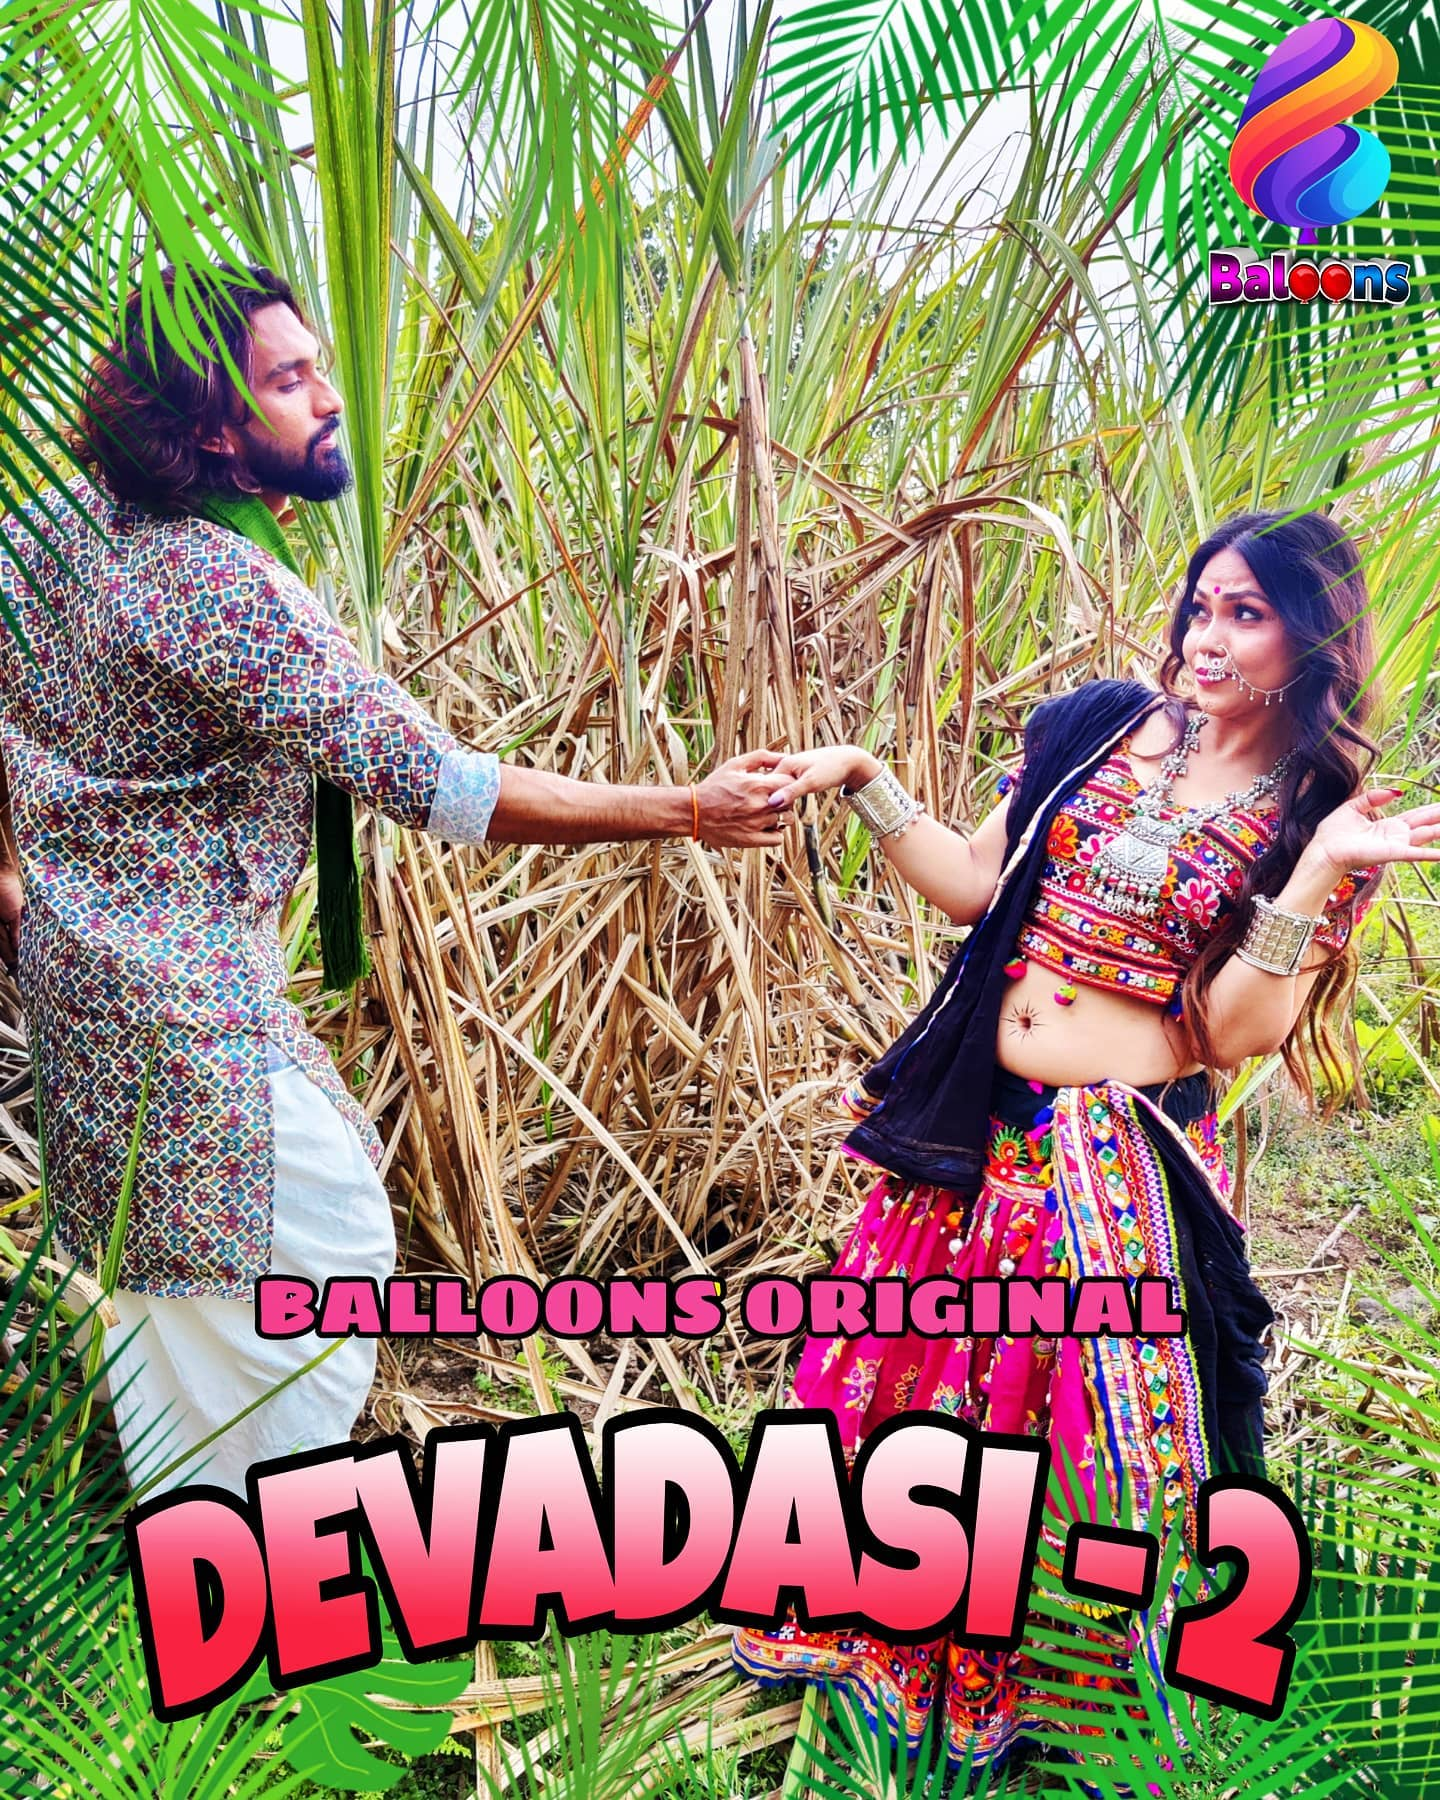 18+ Devadasi 2021 S02E01 Hindi Balloons Original Web Series 720p HDRip 200MB Download NO ADS